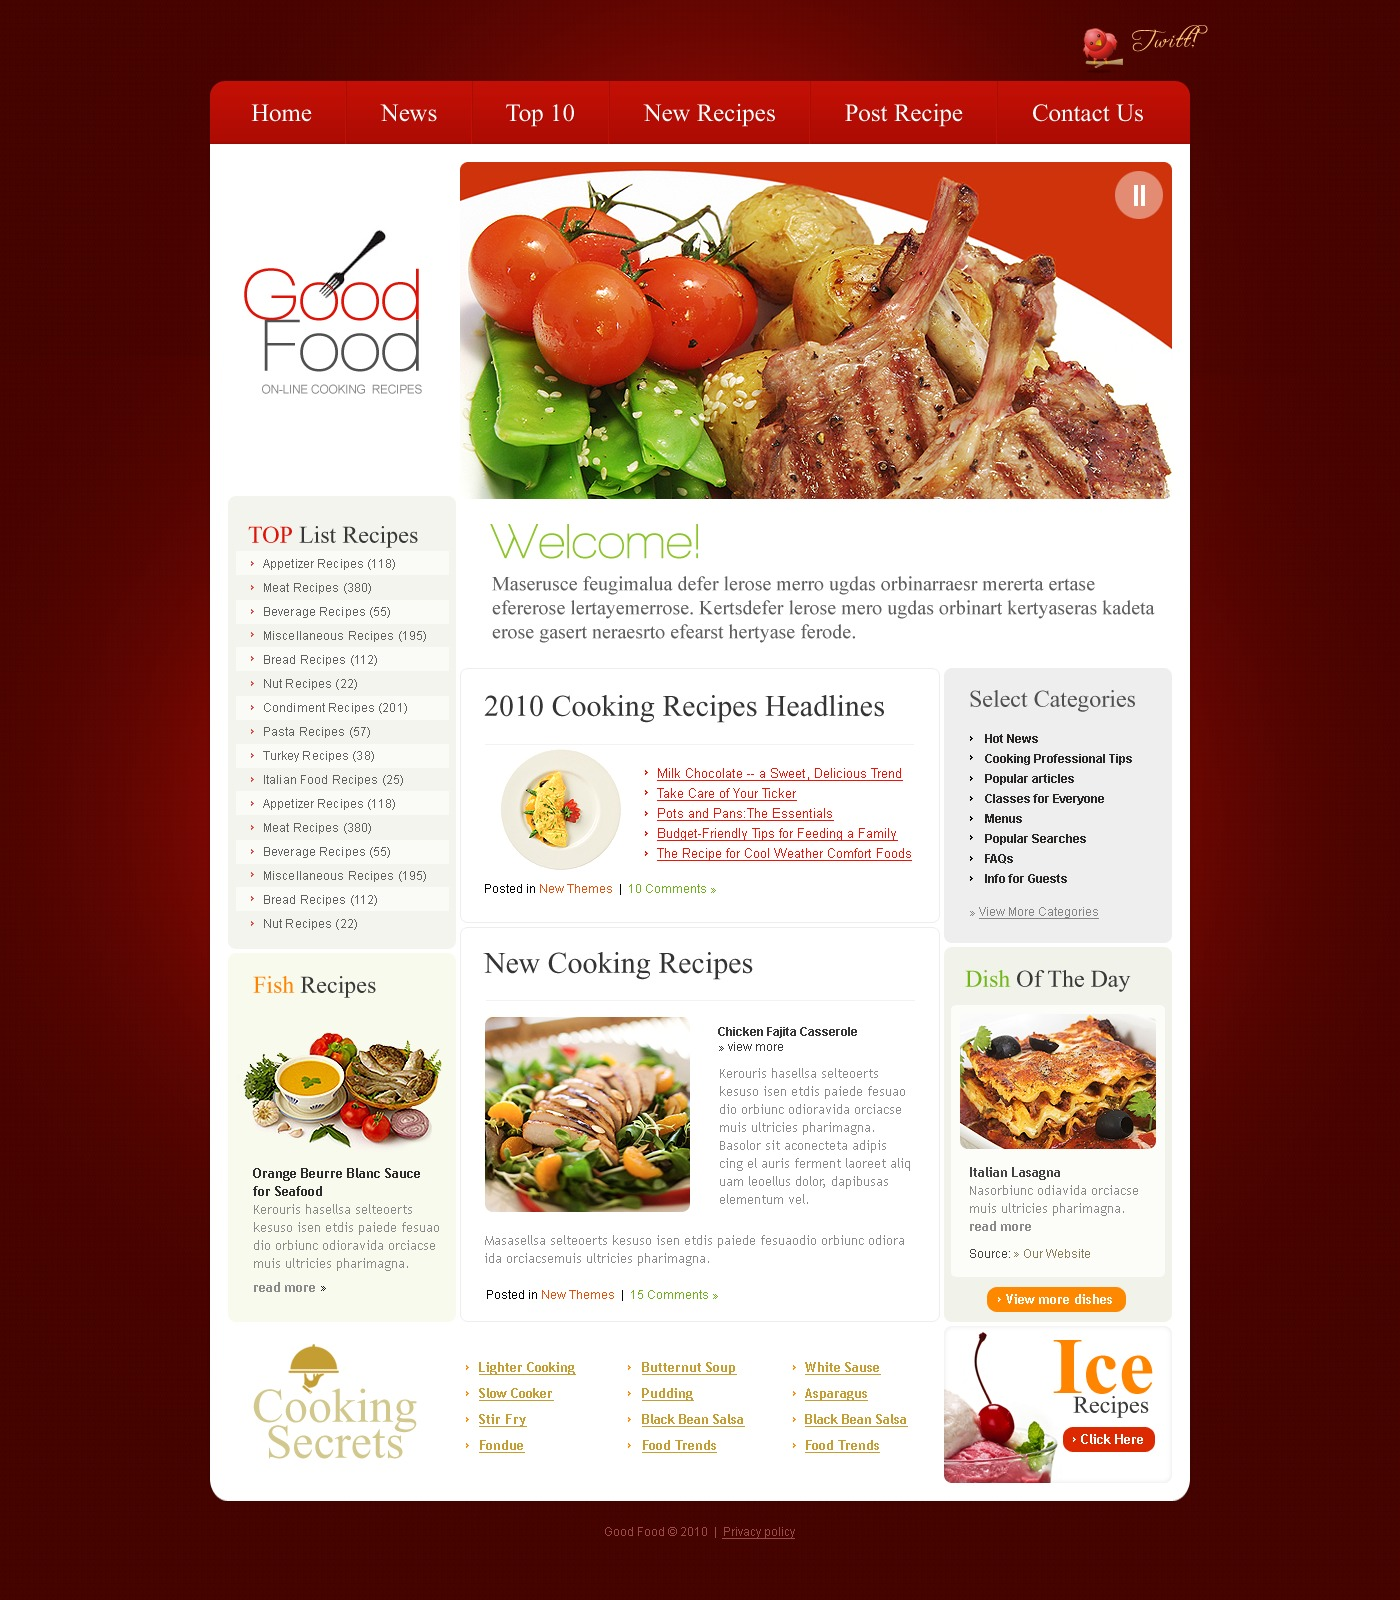 The Good Food PSD Design 54113, one of the best PSD templates of its kind (food & drink, flash 8, wide), also known as good food PSD template, cooking recipes PSD template, cooking recipes PSD template, webpage PSD template, site PSD template, information PSD template, events PSD template, archive PSD template, links PSD template, guestbook PSD template, journal PSD template, visitors PSD template, opinion PSD template, discussion blogroll restaurants PSD template, cuisine PSD template, flavour kitchen PSD template, cookbook PSD template, vegetarian PSD template, healthy PSD template, cocktail PSD template, drink PSD template, technique PSD template, delivery PSD template, ingredients PSD template, di and related with good food, cooking recipes, cooking recipes, webpage, site, information, events, archive, links, guestbook, journal, visitors, opinion, discussion blogroll restaurants, cuisine, flavour kitchen, cookbook, vegetarian, healthy, cocktail, drink, technique, delivery, ingredients, di, etc.